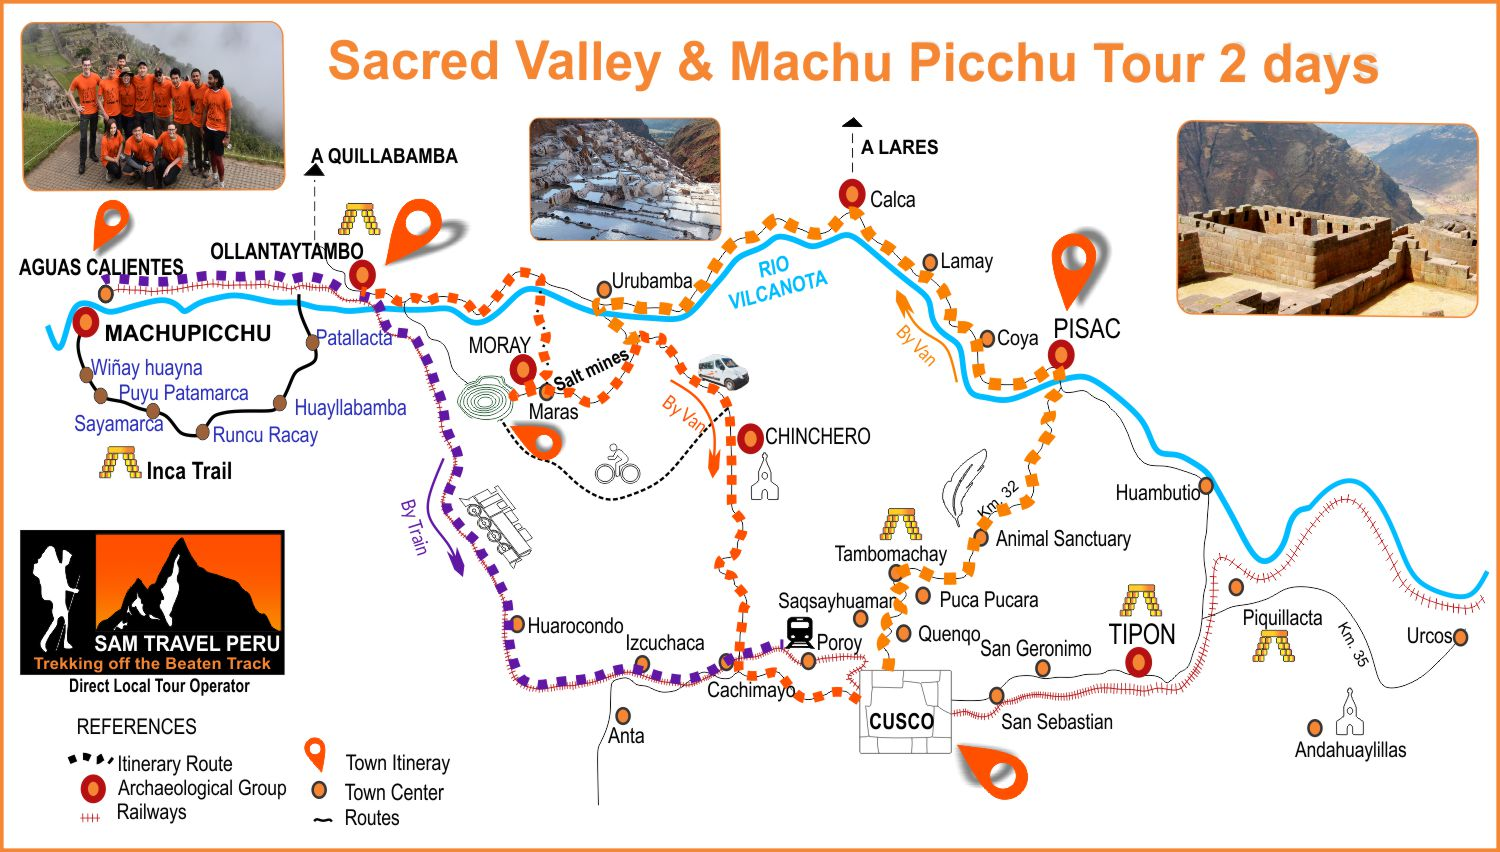 Sacred Valley & Machu Picchu Tour 2 days